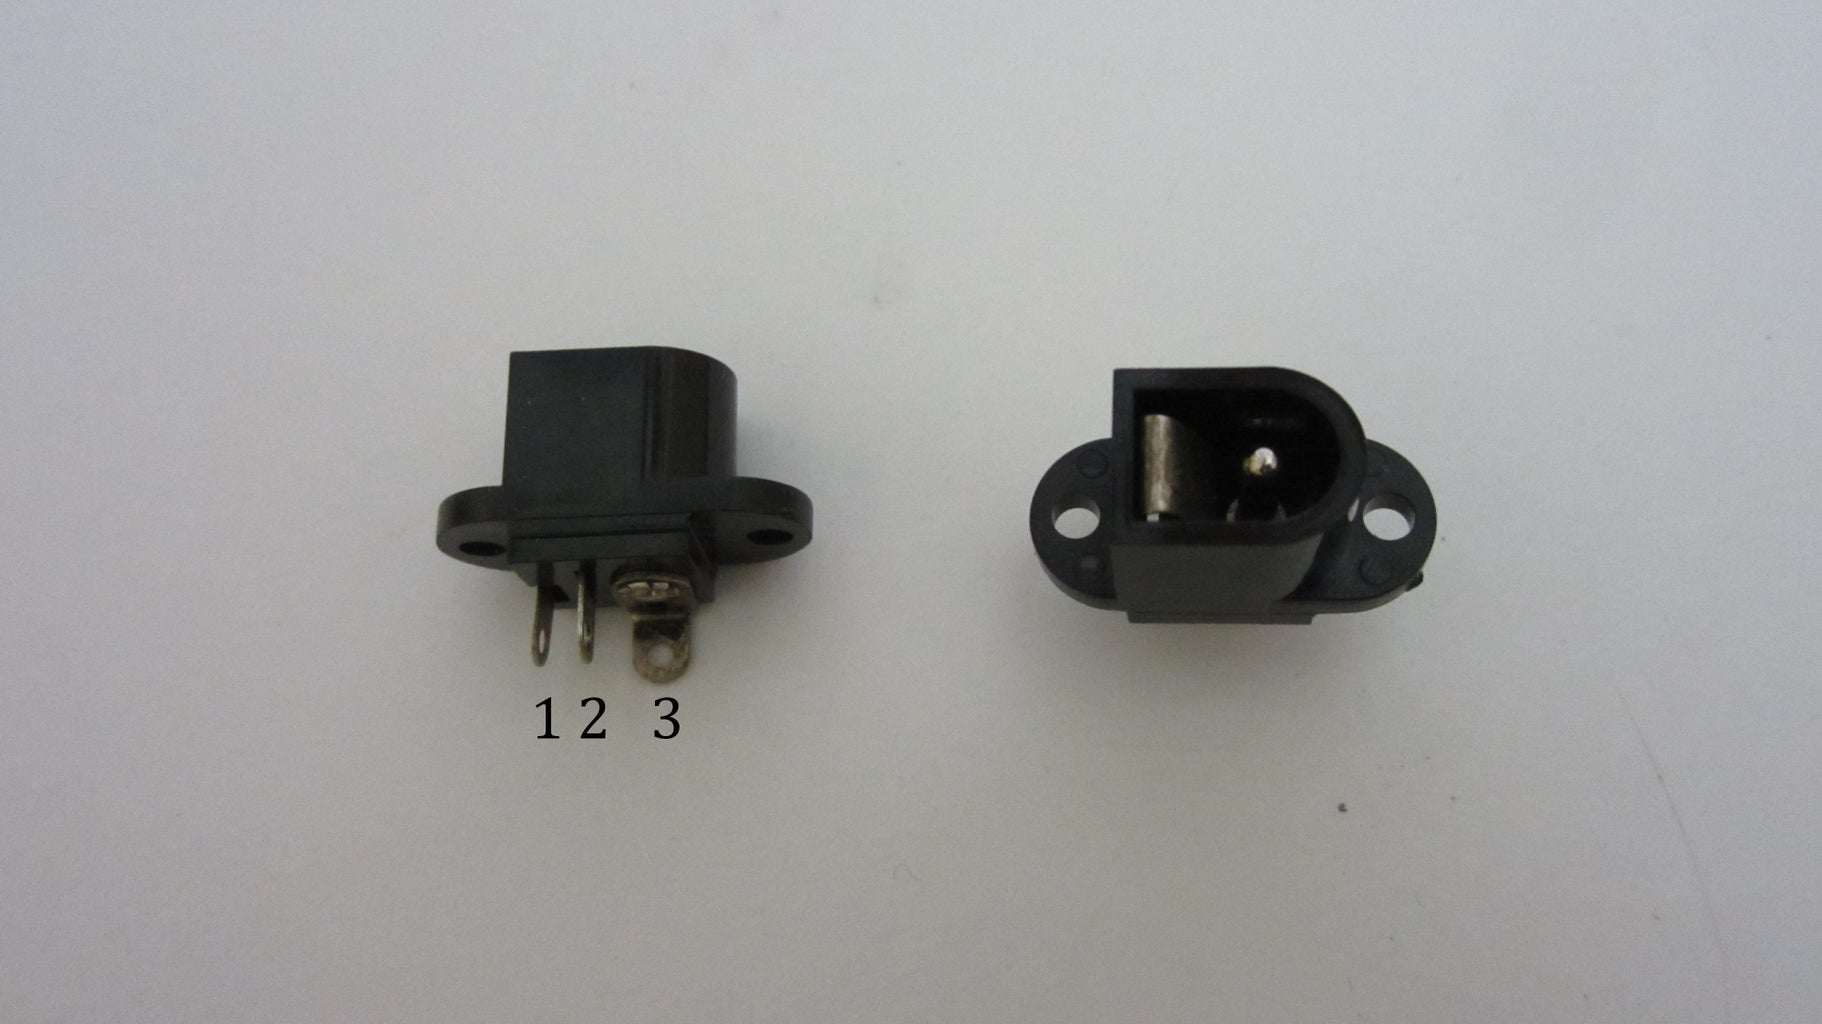 Connect the Power Supply Using a Power Jack With a Built-in Switch